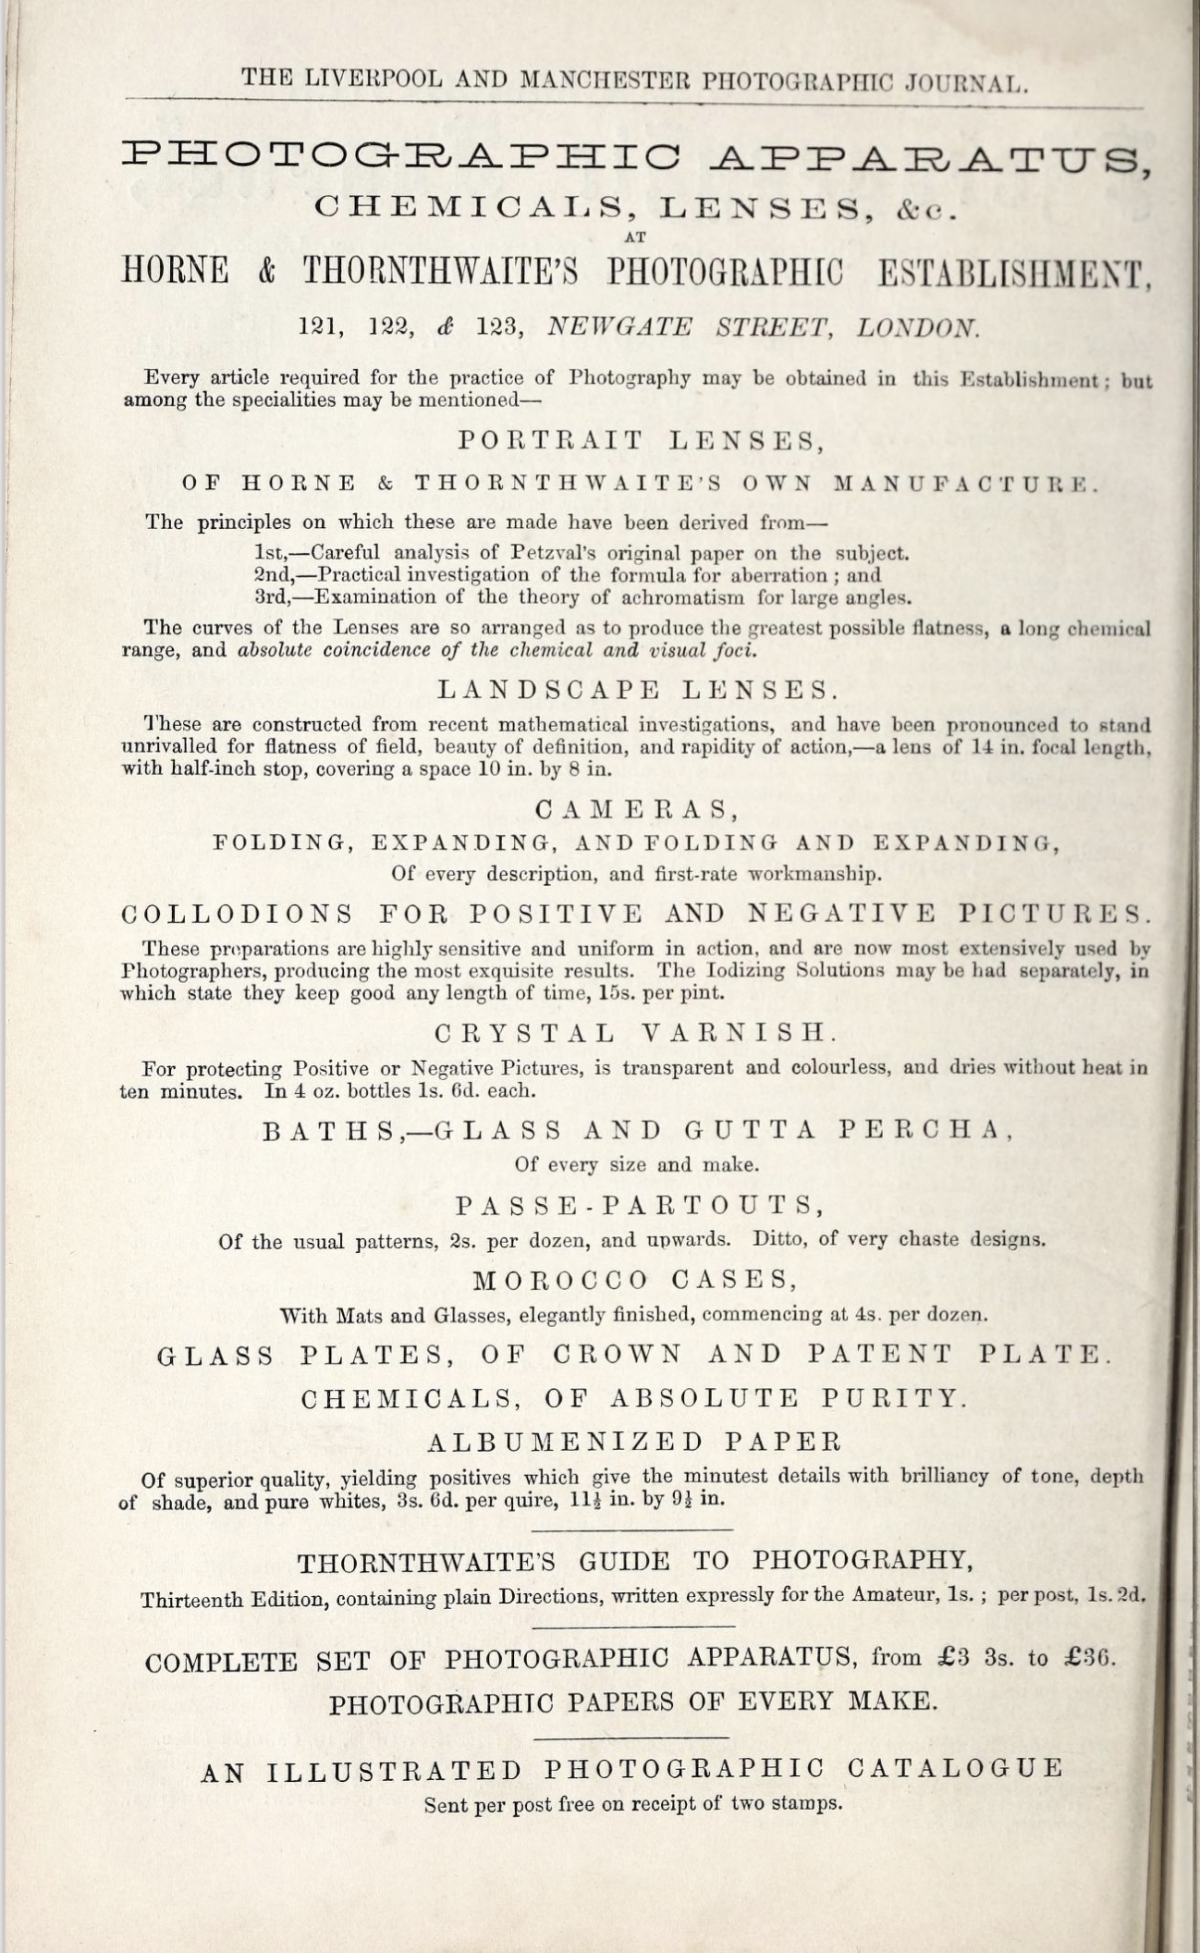 Historic ad for Horne & Thornthwaite's Photographic Establishment in London circa 1857